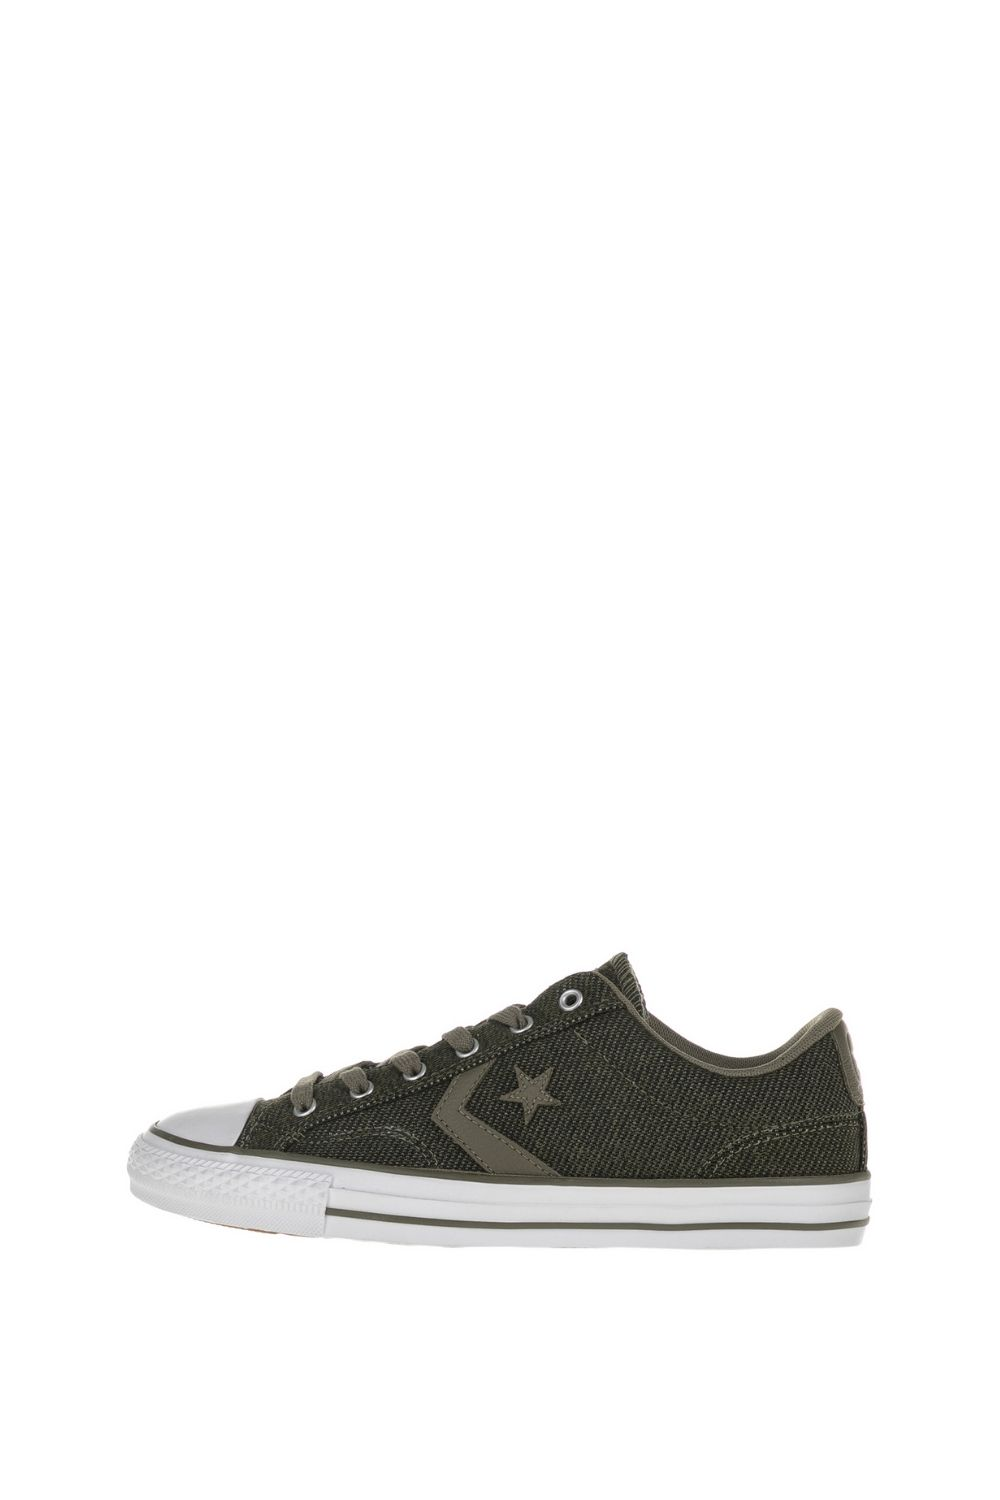 CONVERSE – Unisex sneakers CONVERSE Star Player Ox χακί